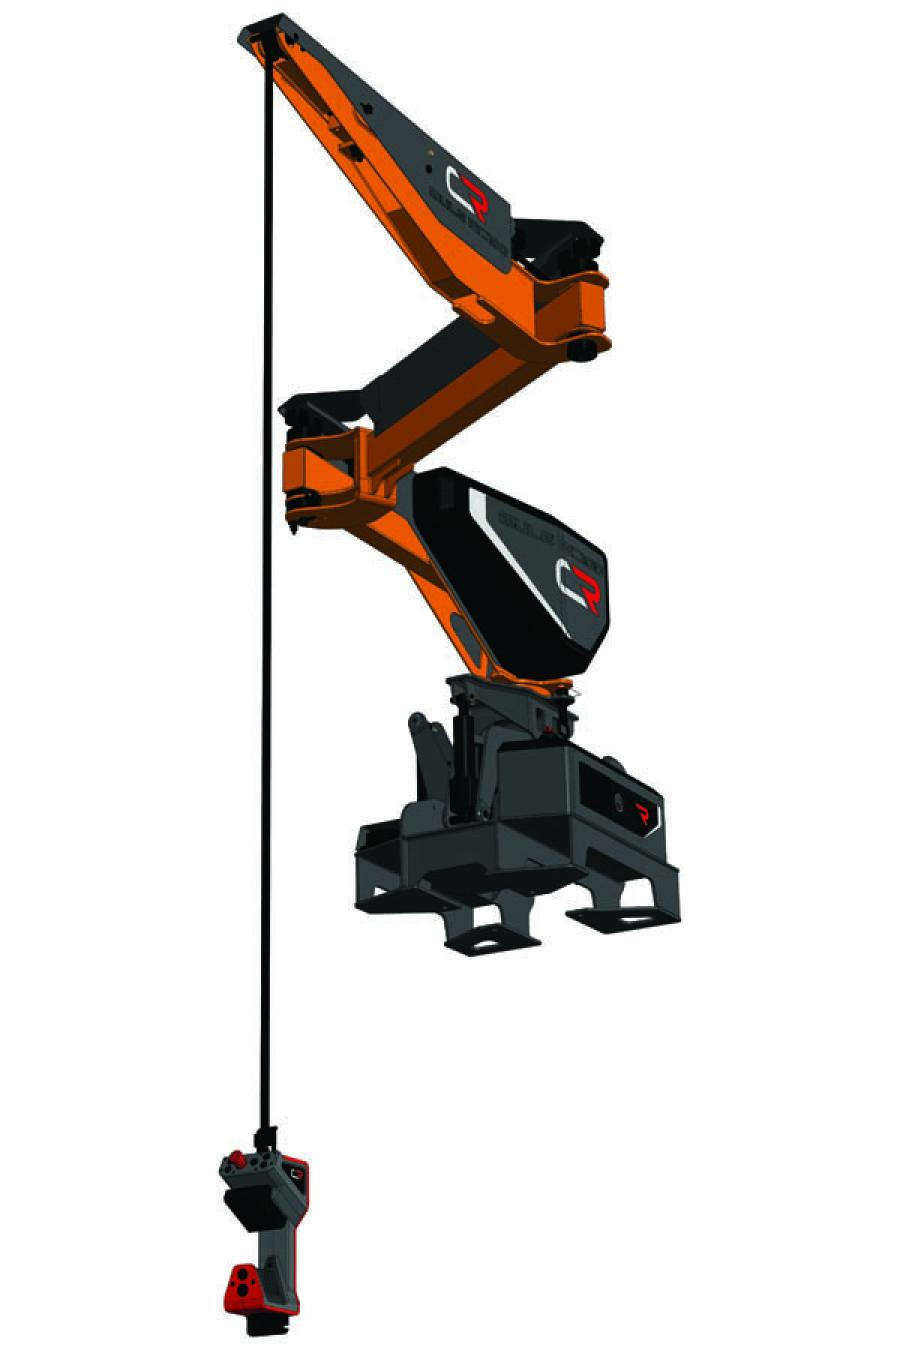 Construction Robotics launched its new MZ100, co-developed with JLG, the latest addition to the Mule product line. This product, which is a smaller, lighter weight version of the original Mule, is self-leveling, powered by a Lithium Ion battery and can be directly coupled to JLG and SkyTrak telehandlers, moving it from a static-based job site solution to a mobile one.